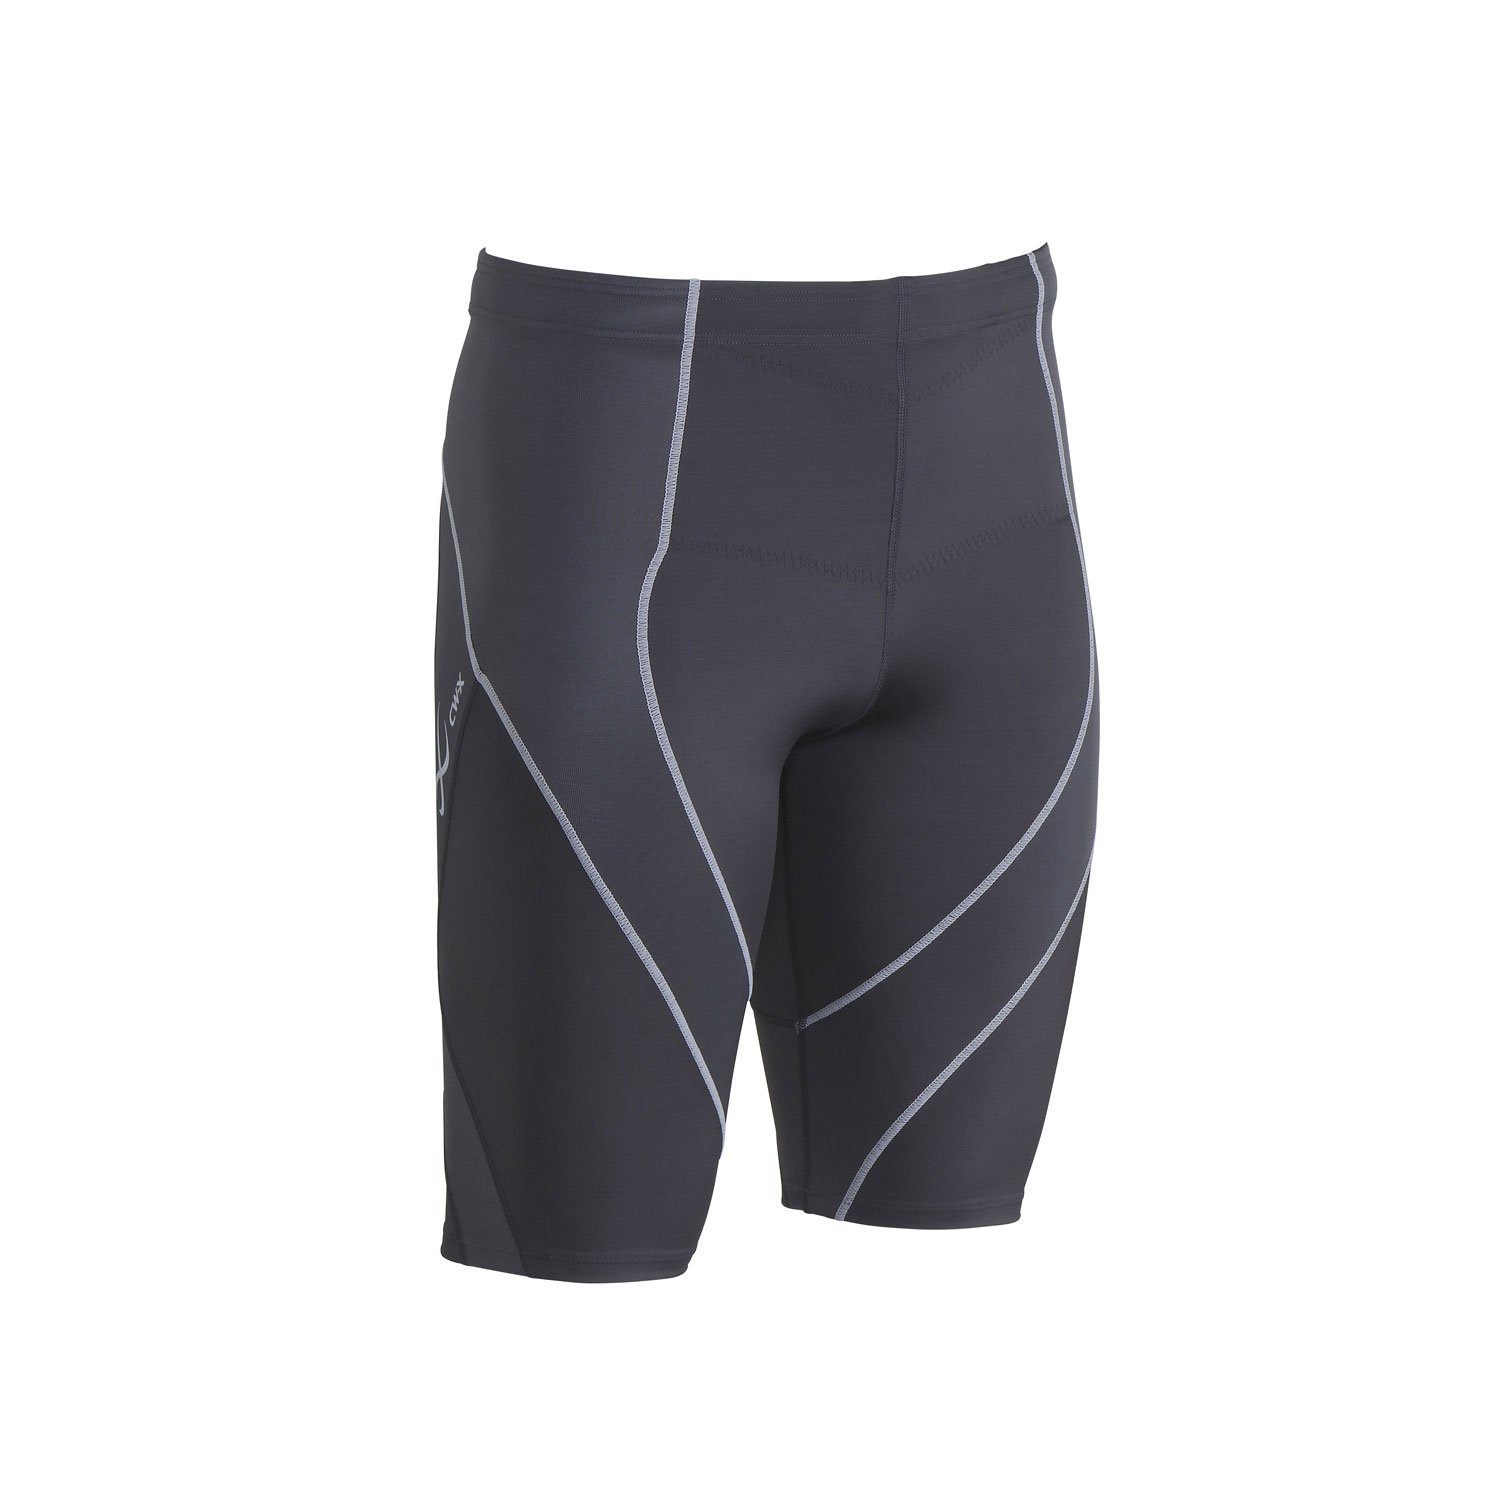 CW-X Men's Endurance Pro Shorts, Charcoal/Charcoal/Silver, Medium by CW-X (Image #2)